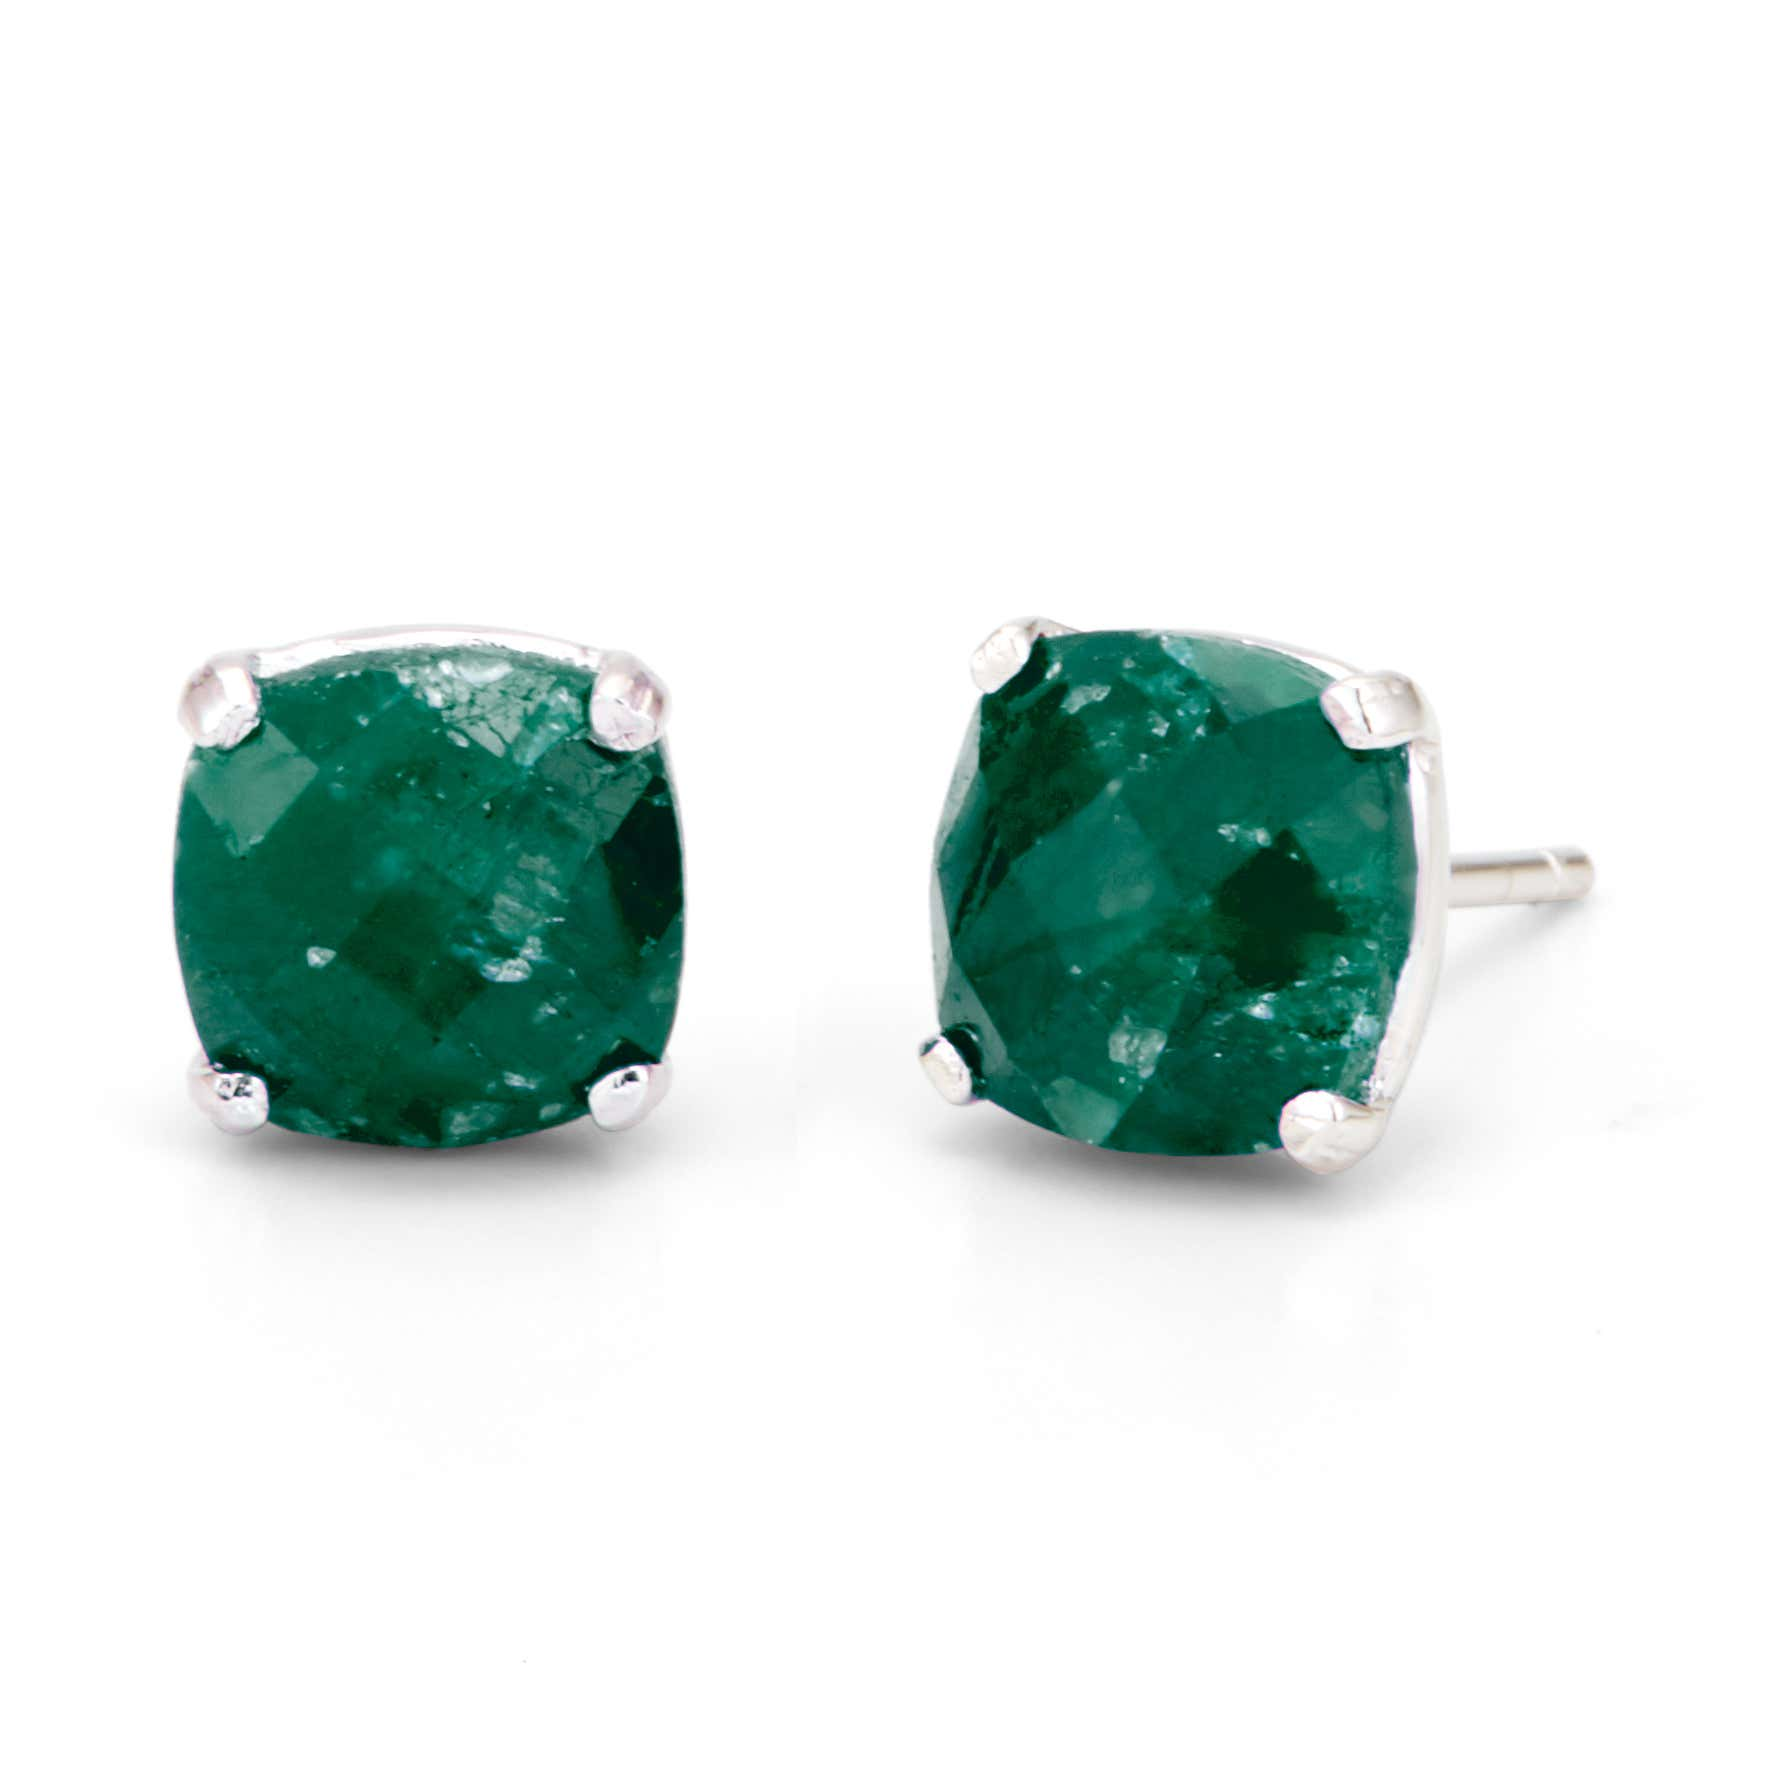 May Emerald Cushion Cut Gemstone Silver Earrings